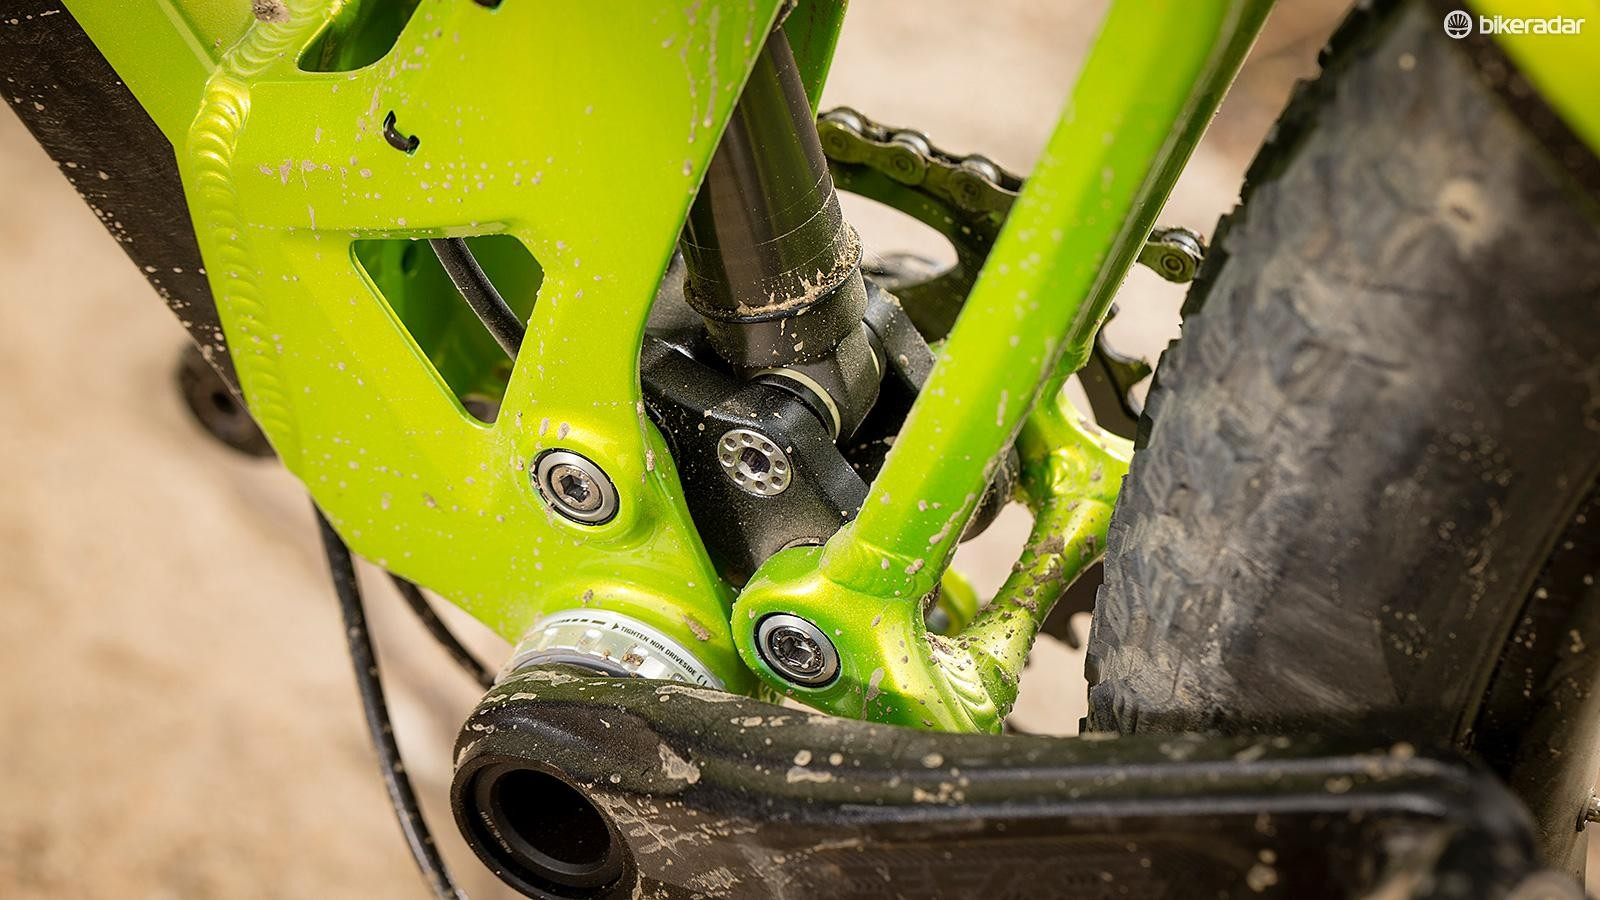 The twin-link suspension system delivers supple bump compliance and stable pedalling